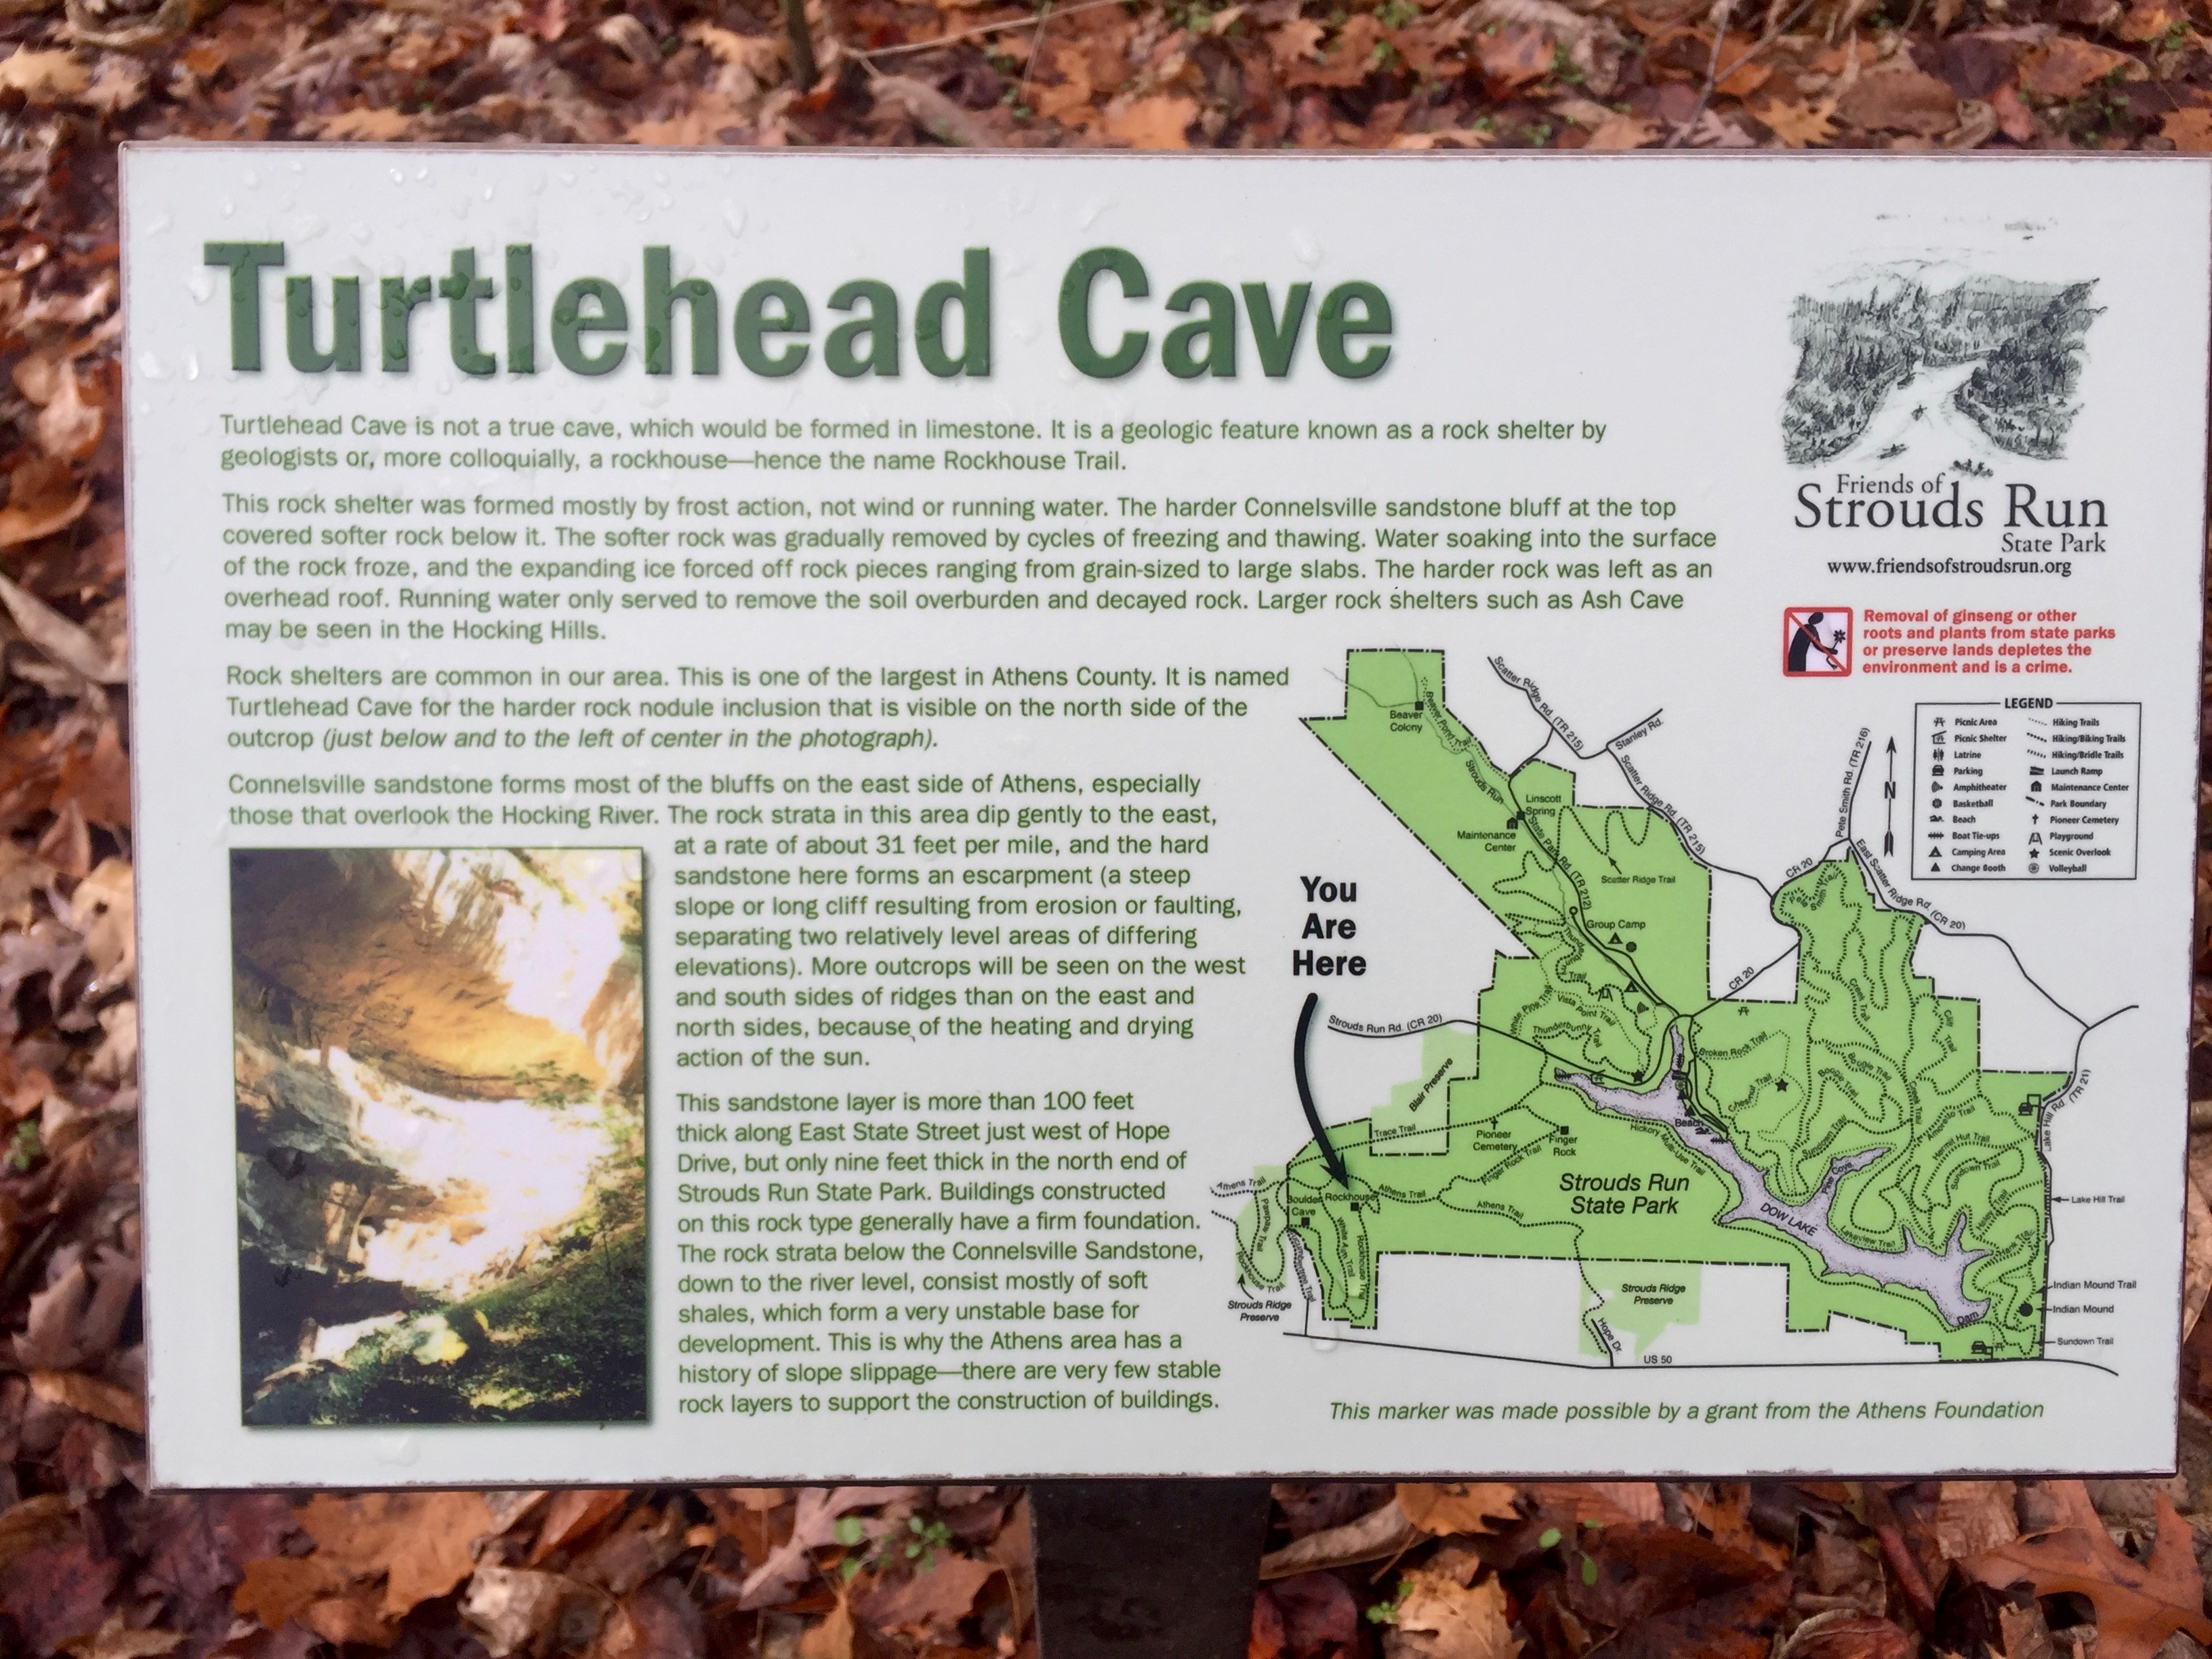 One of the coolest things about hiking in and around Stroud's Run is the informational signs along the way. i always stop to read them, even if I've already done so multiple times. This one is for Turtlehead Cave, a key sight along the Rockouse Trail